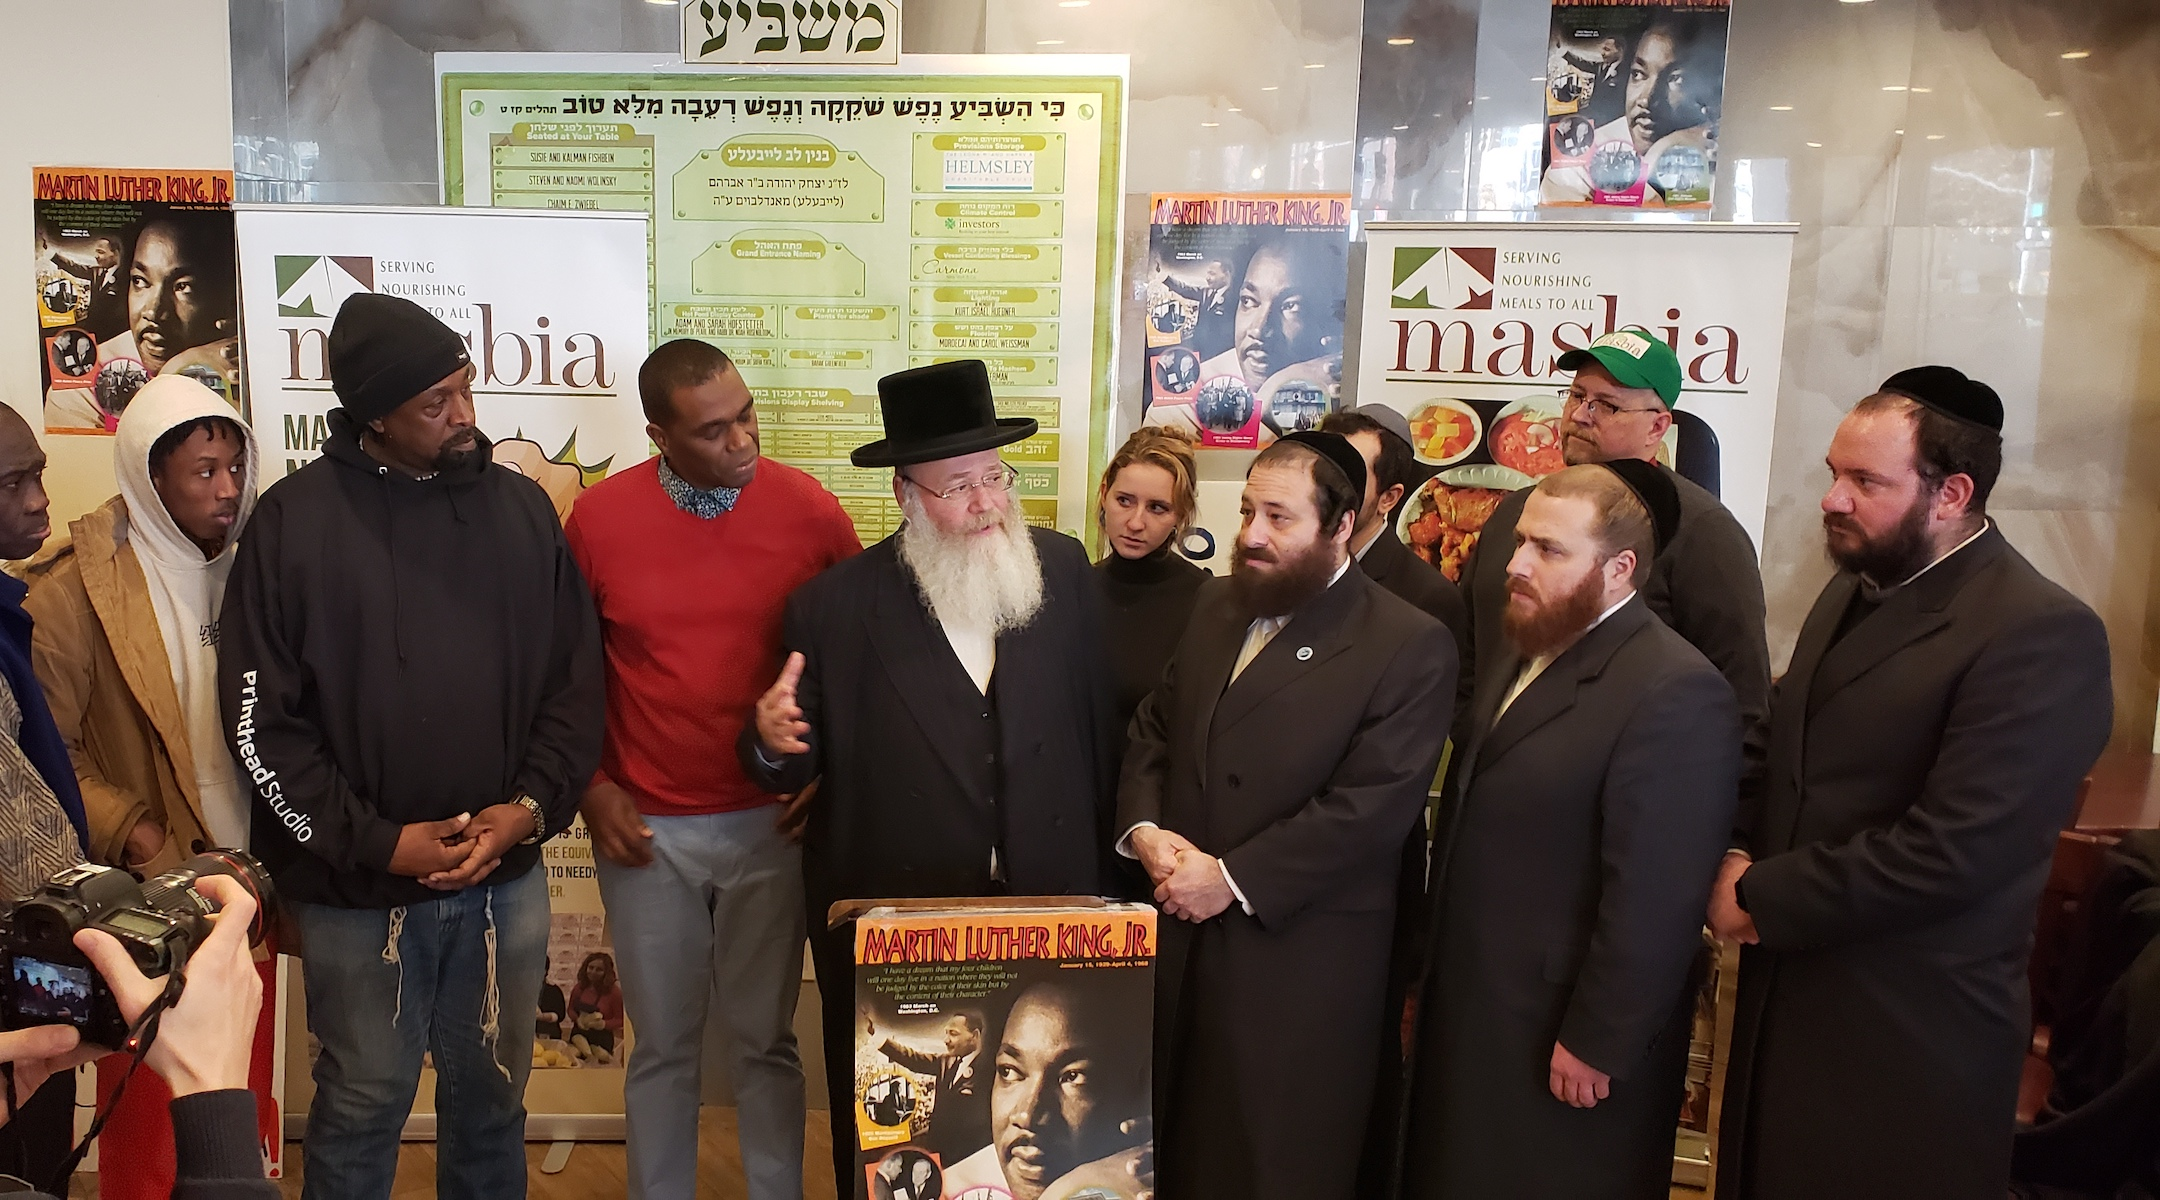 Yosef Rapaport, a community activist, speaks at a Martin Luther King Jr., Day event at the Masbia soup kitchen in Brooklyn. (Courtesy of Masbia)